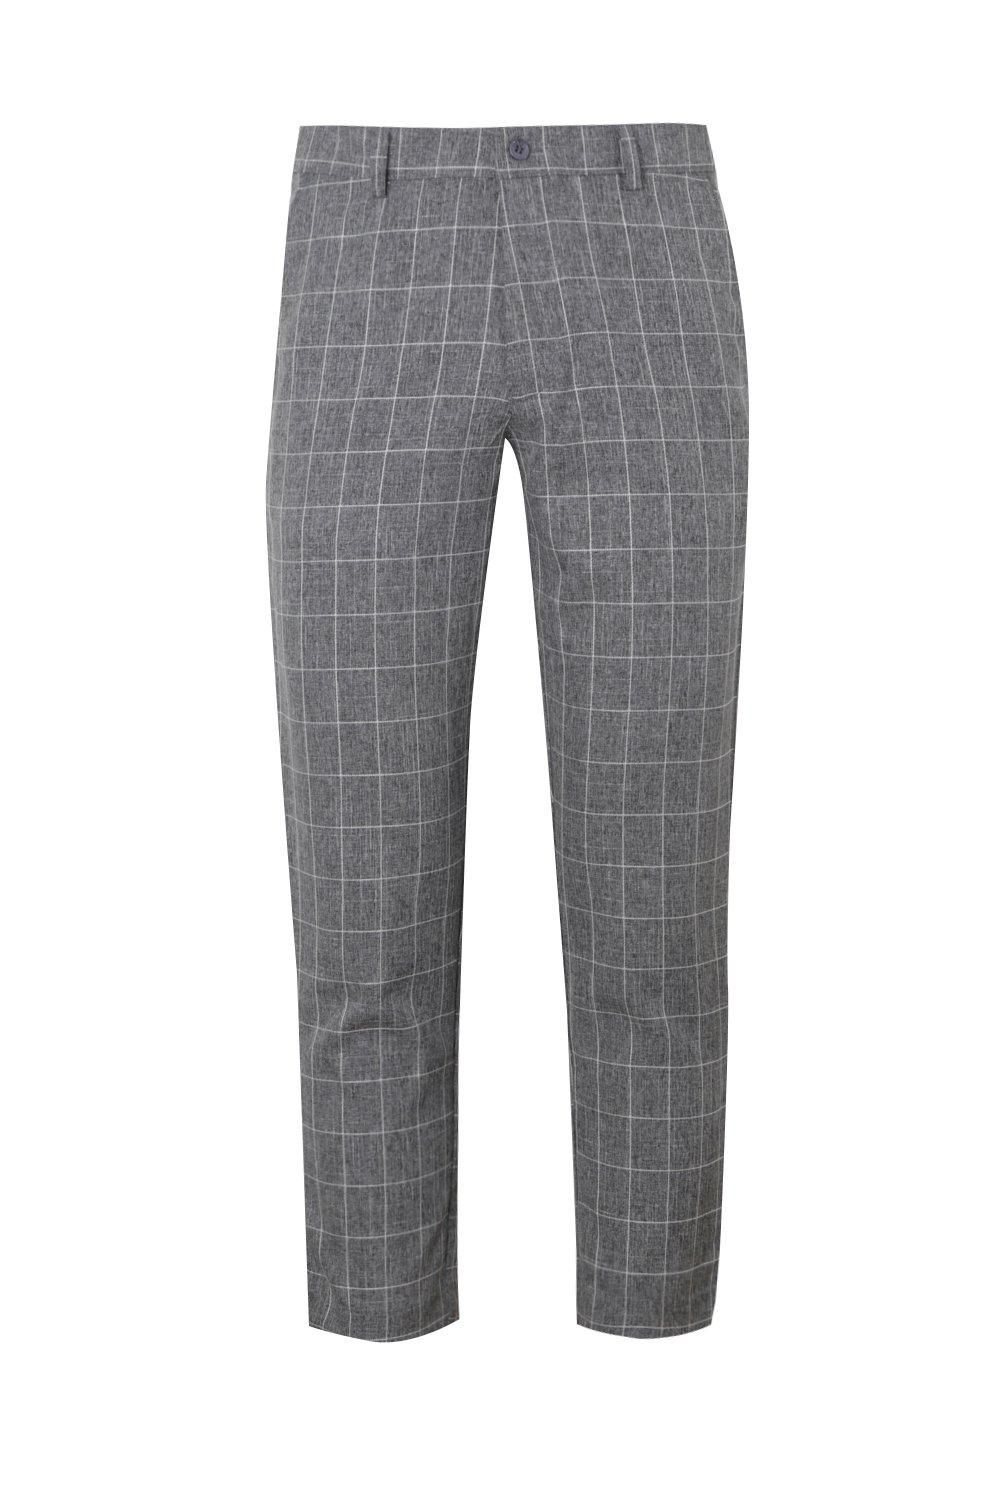 boohooMAN Dele Tapered Fit Trouser In Grey Windowpane Check